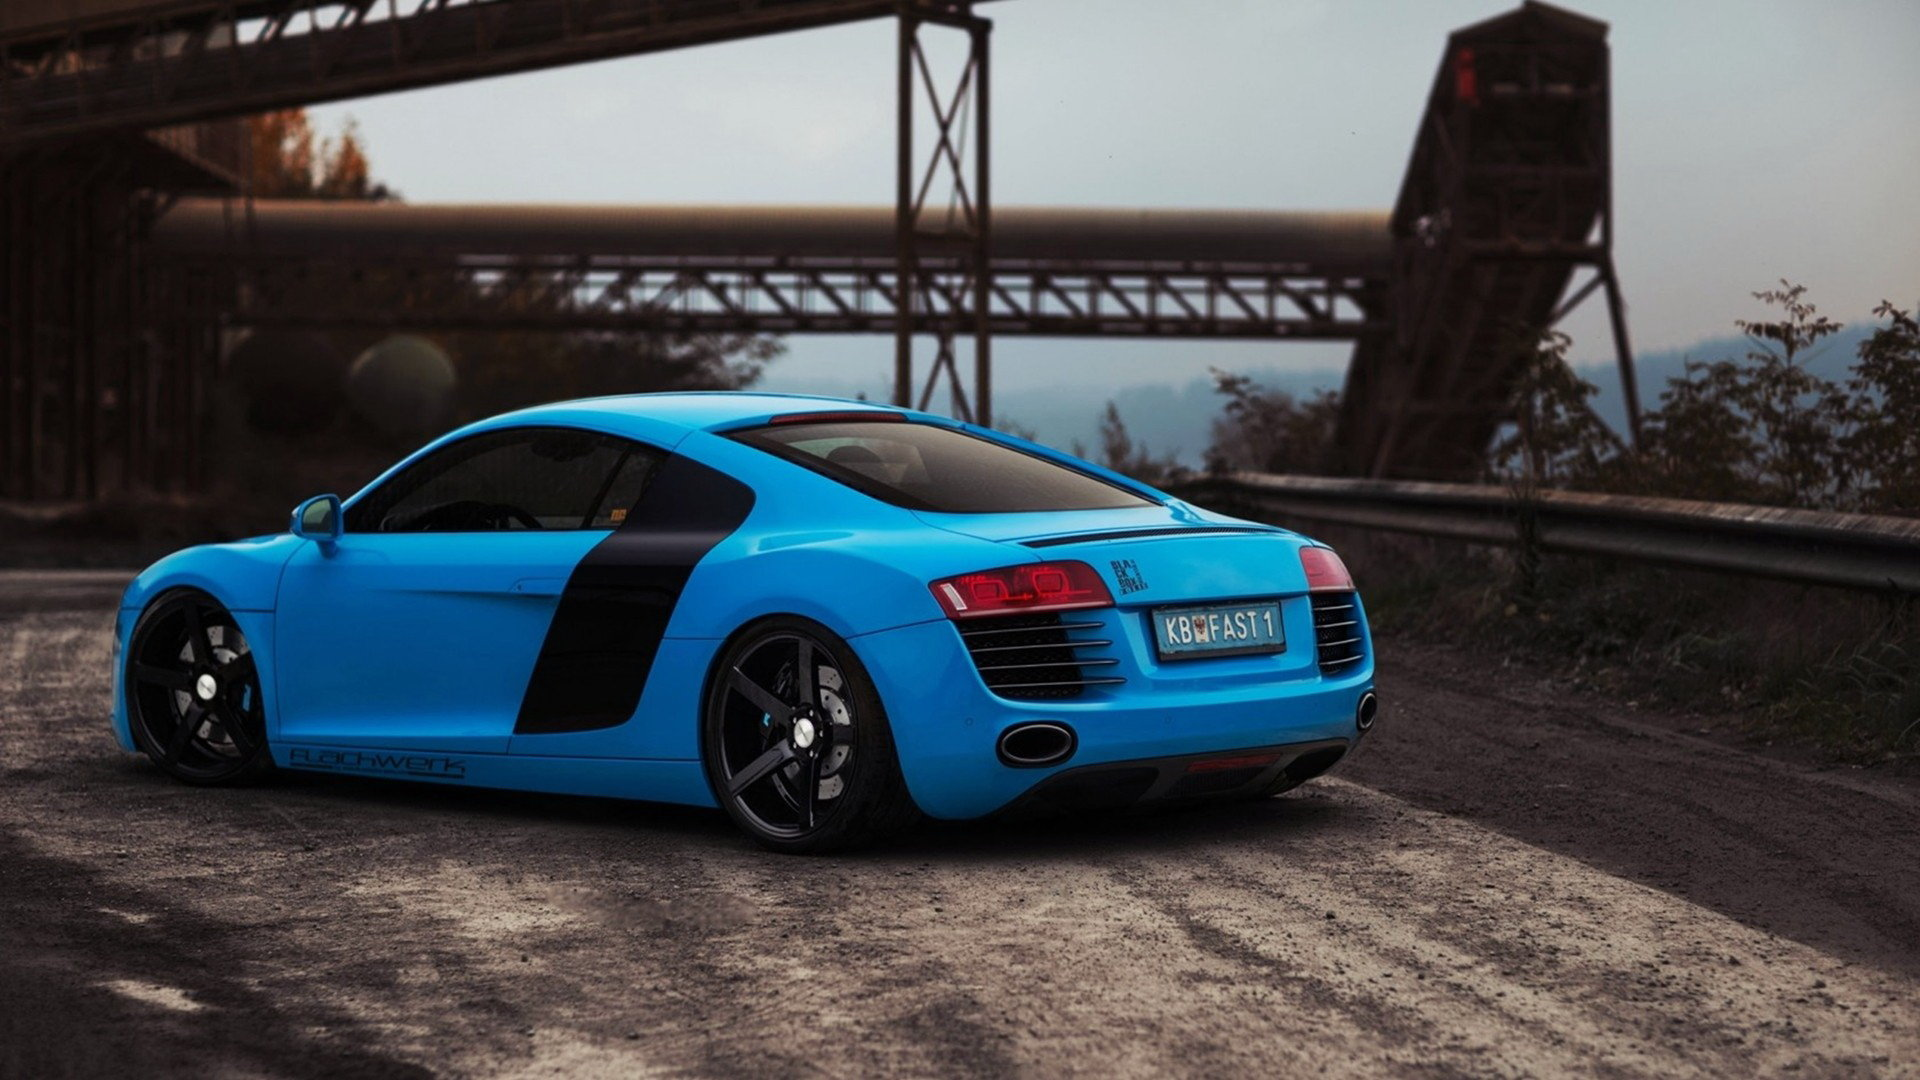 Awesome Audi R8 Free Wallpaper Id 452722 For Full Hd Computer